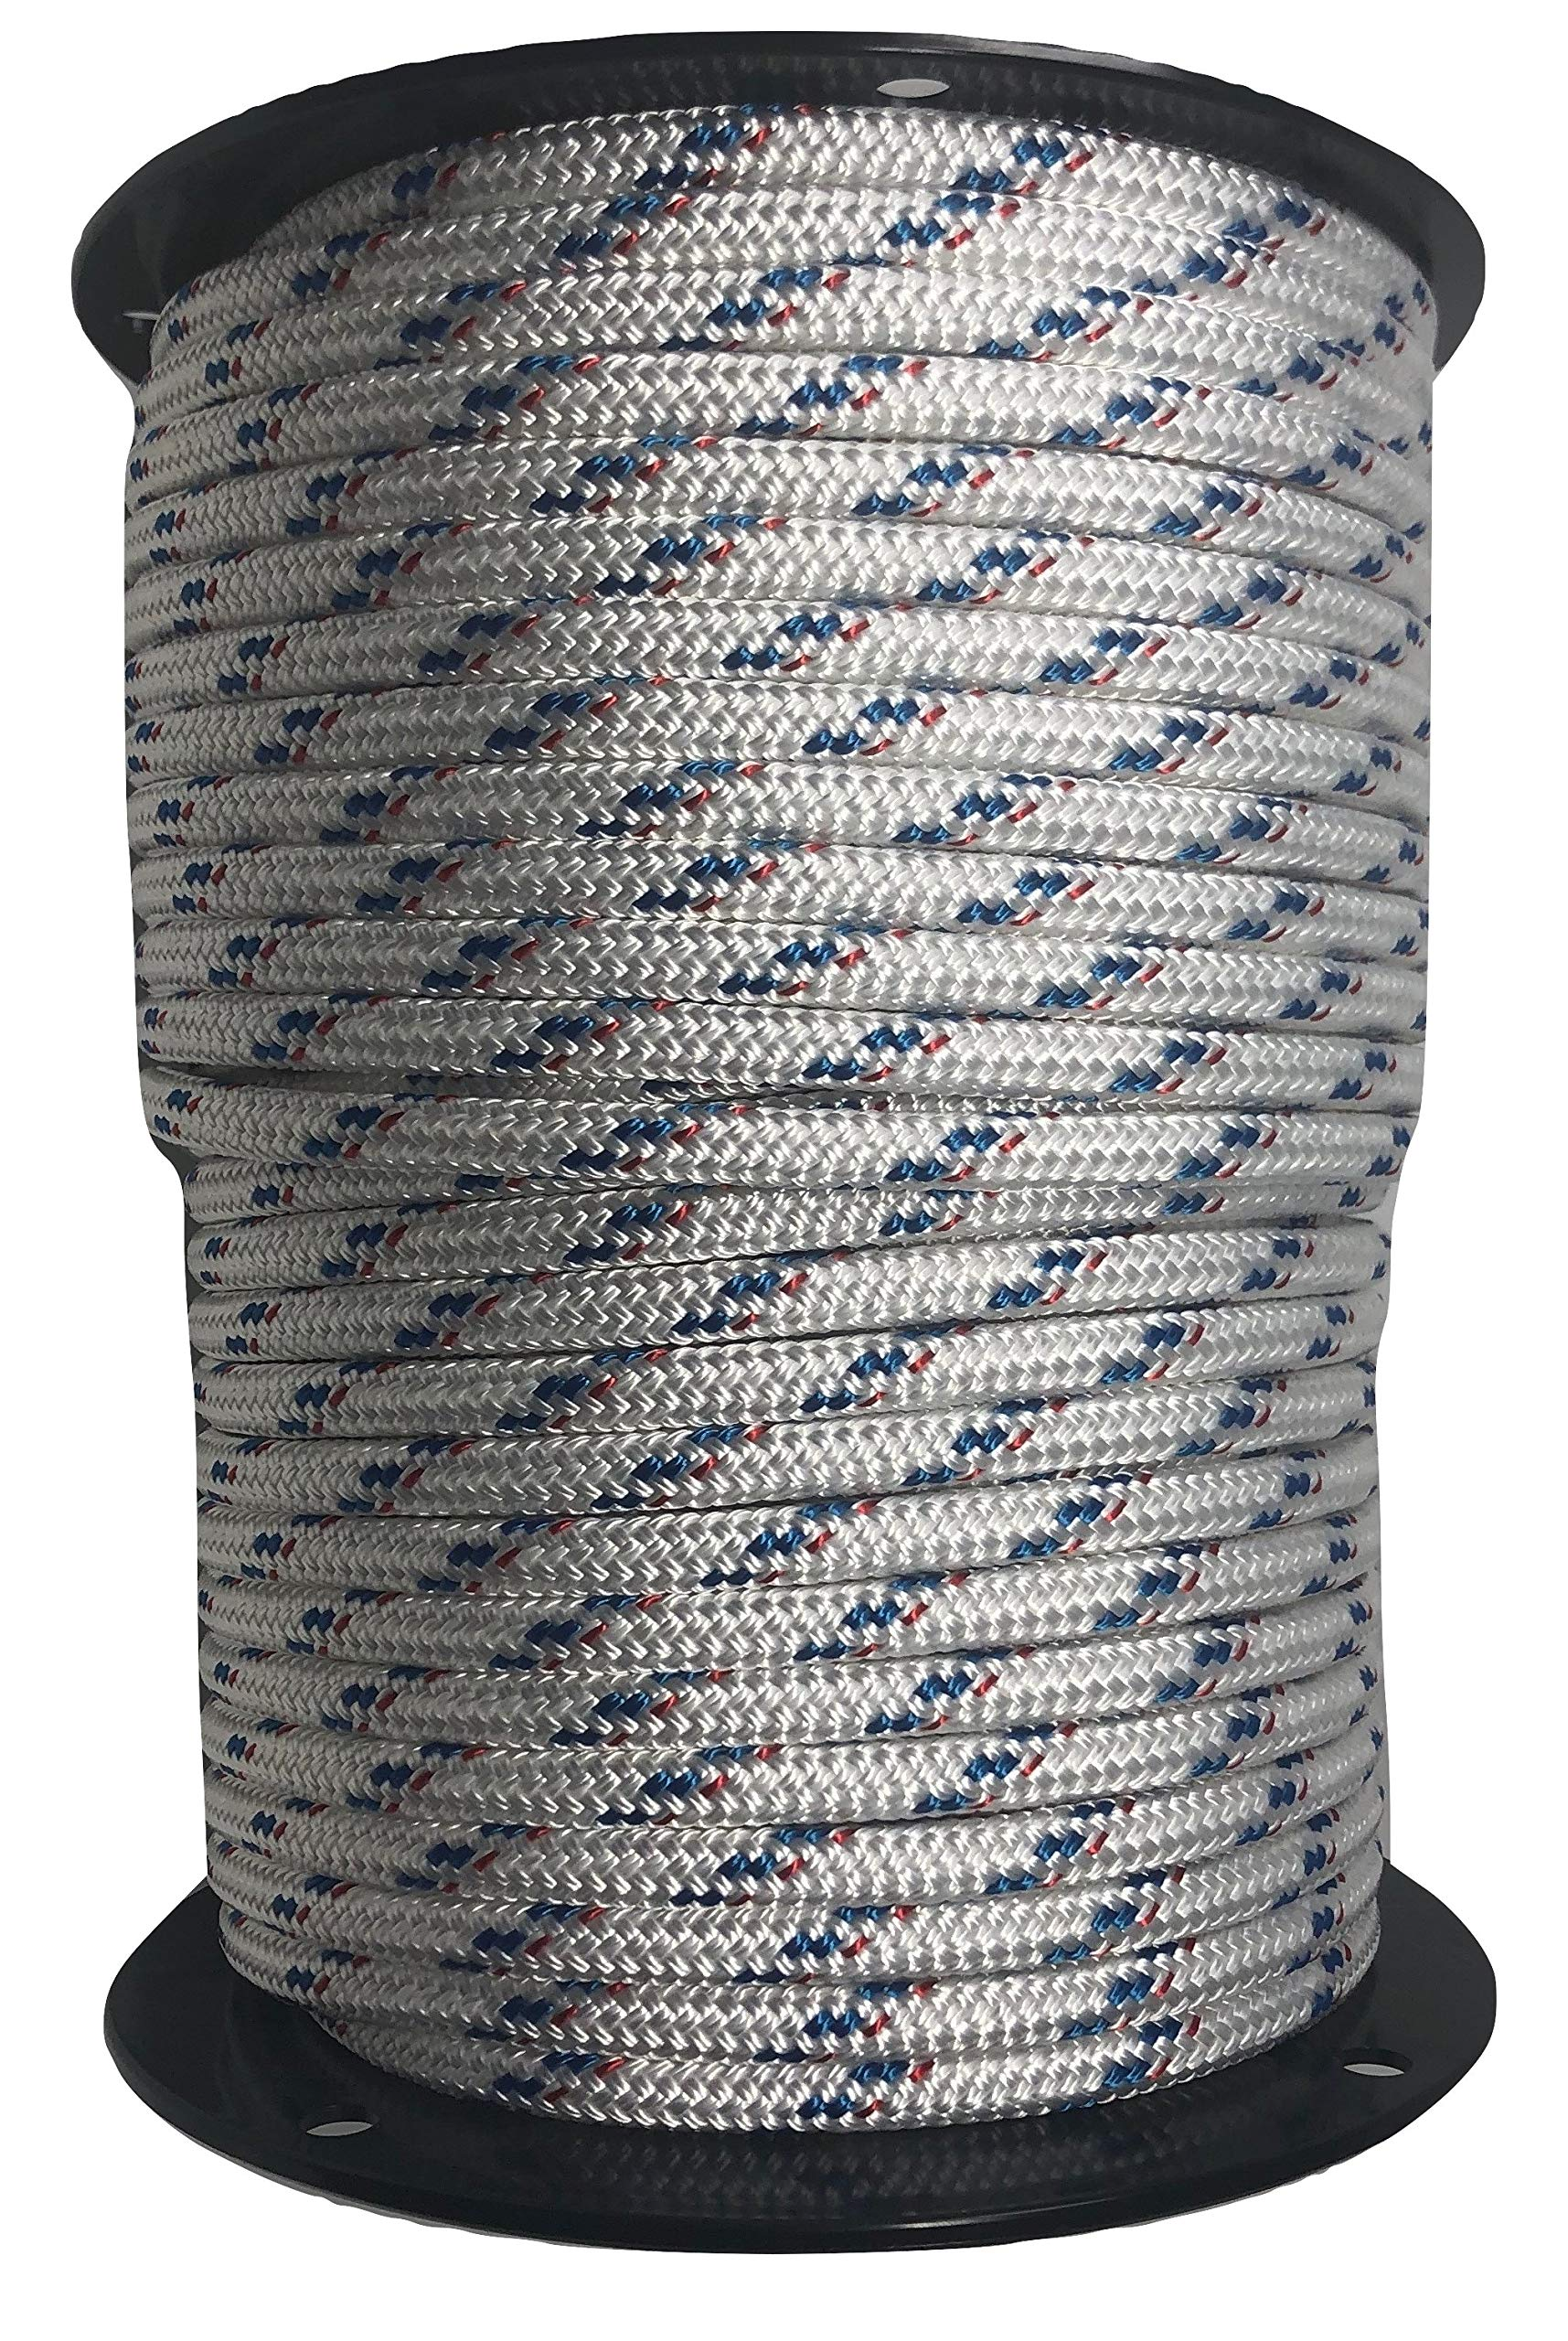 7/16'' Double Braid/Yacht Braid Premium Polyester Halyard Rigging Line, White/Blue with Red Fleck (100)